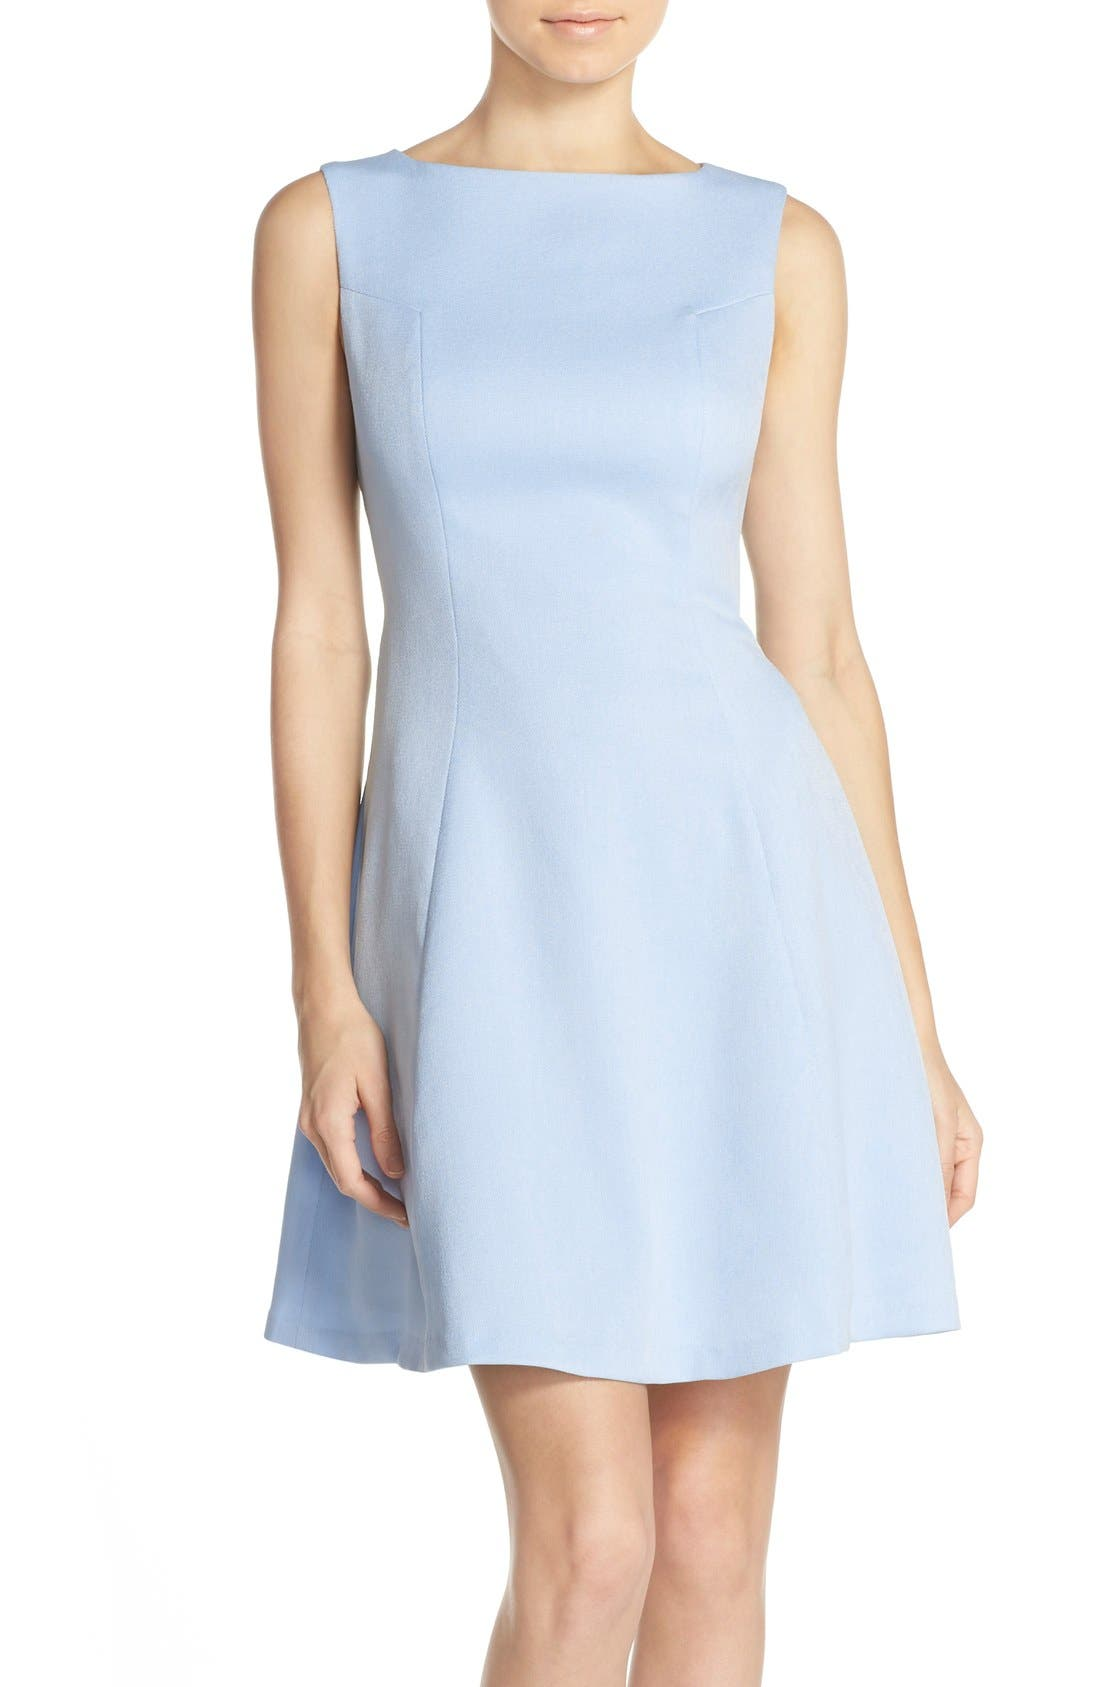 Alternate Image 1 Selected - Chelsea28 Woven Fit & Flare Dress